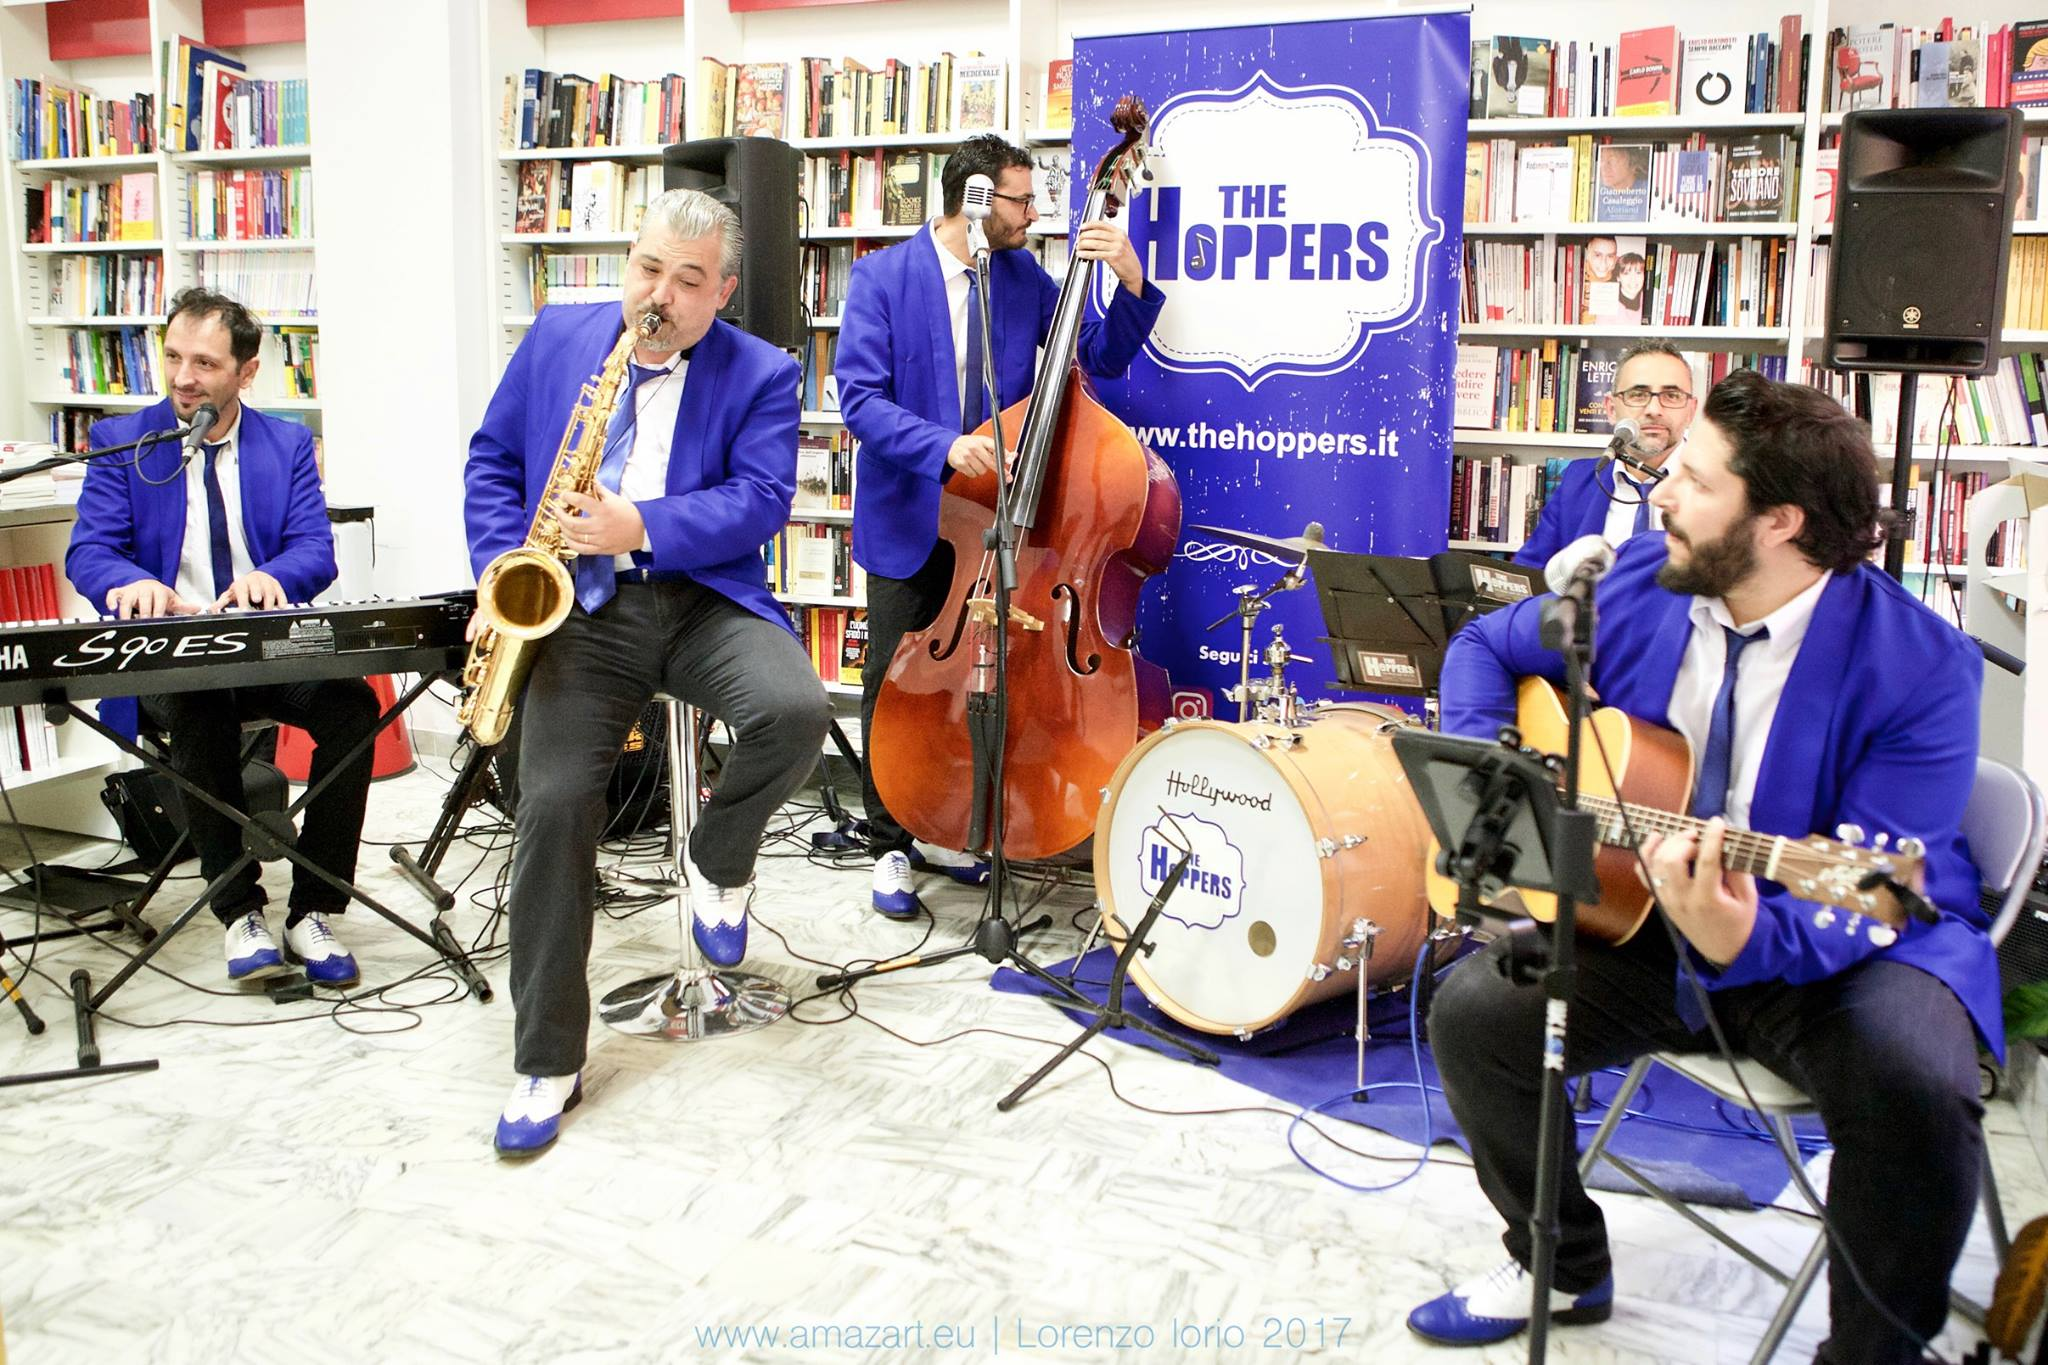 The Hoppers: Presentazione del Disco